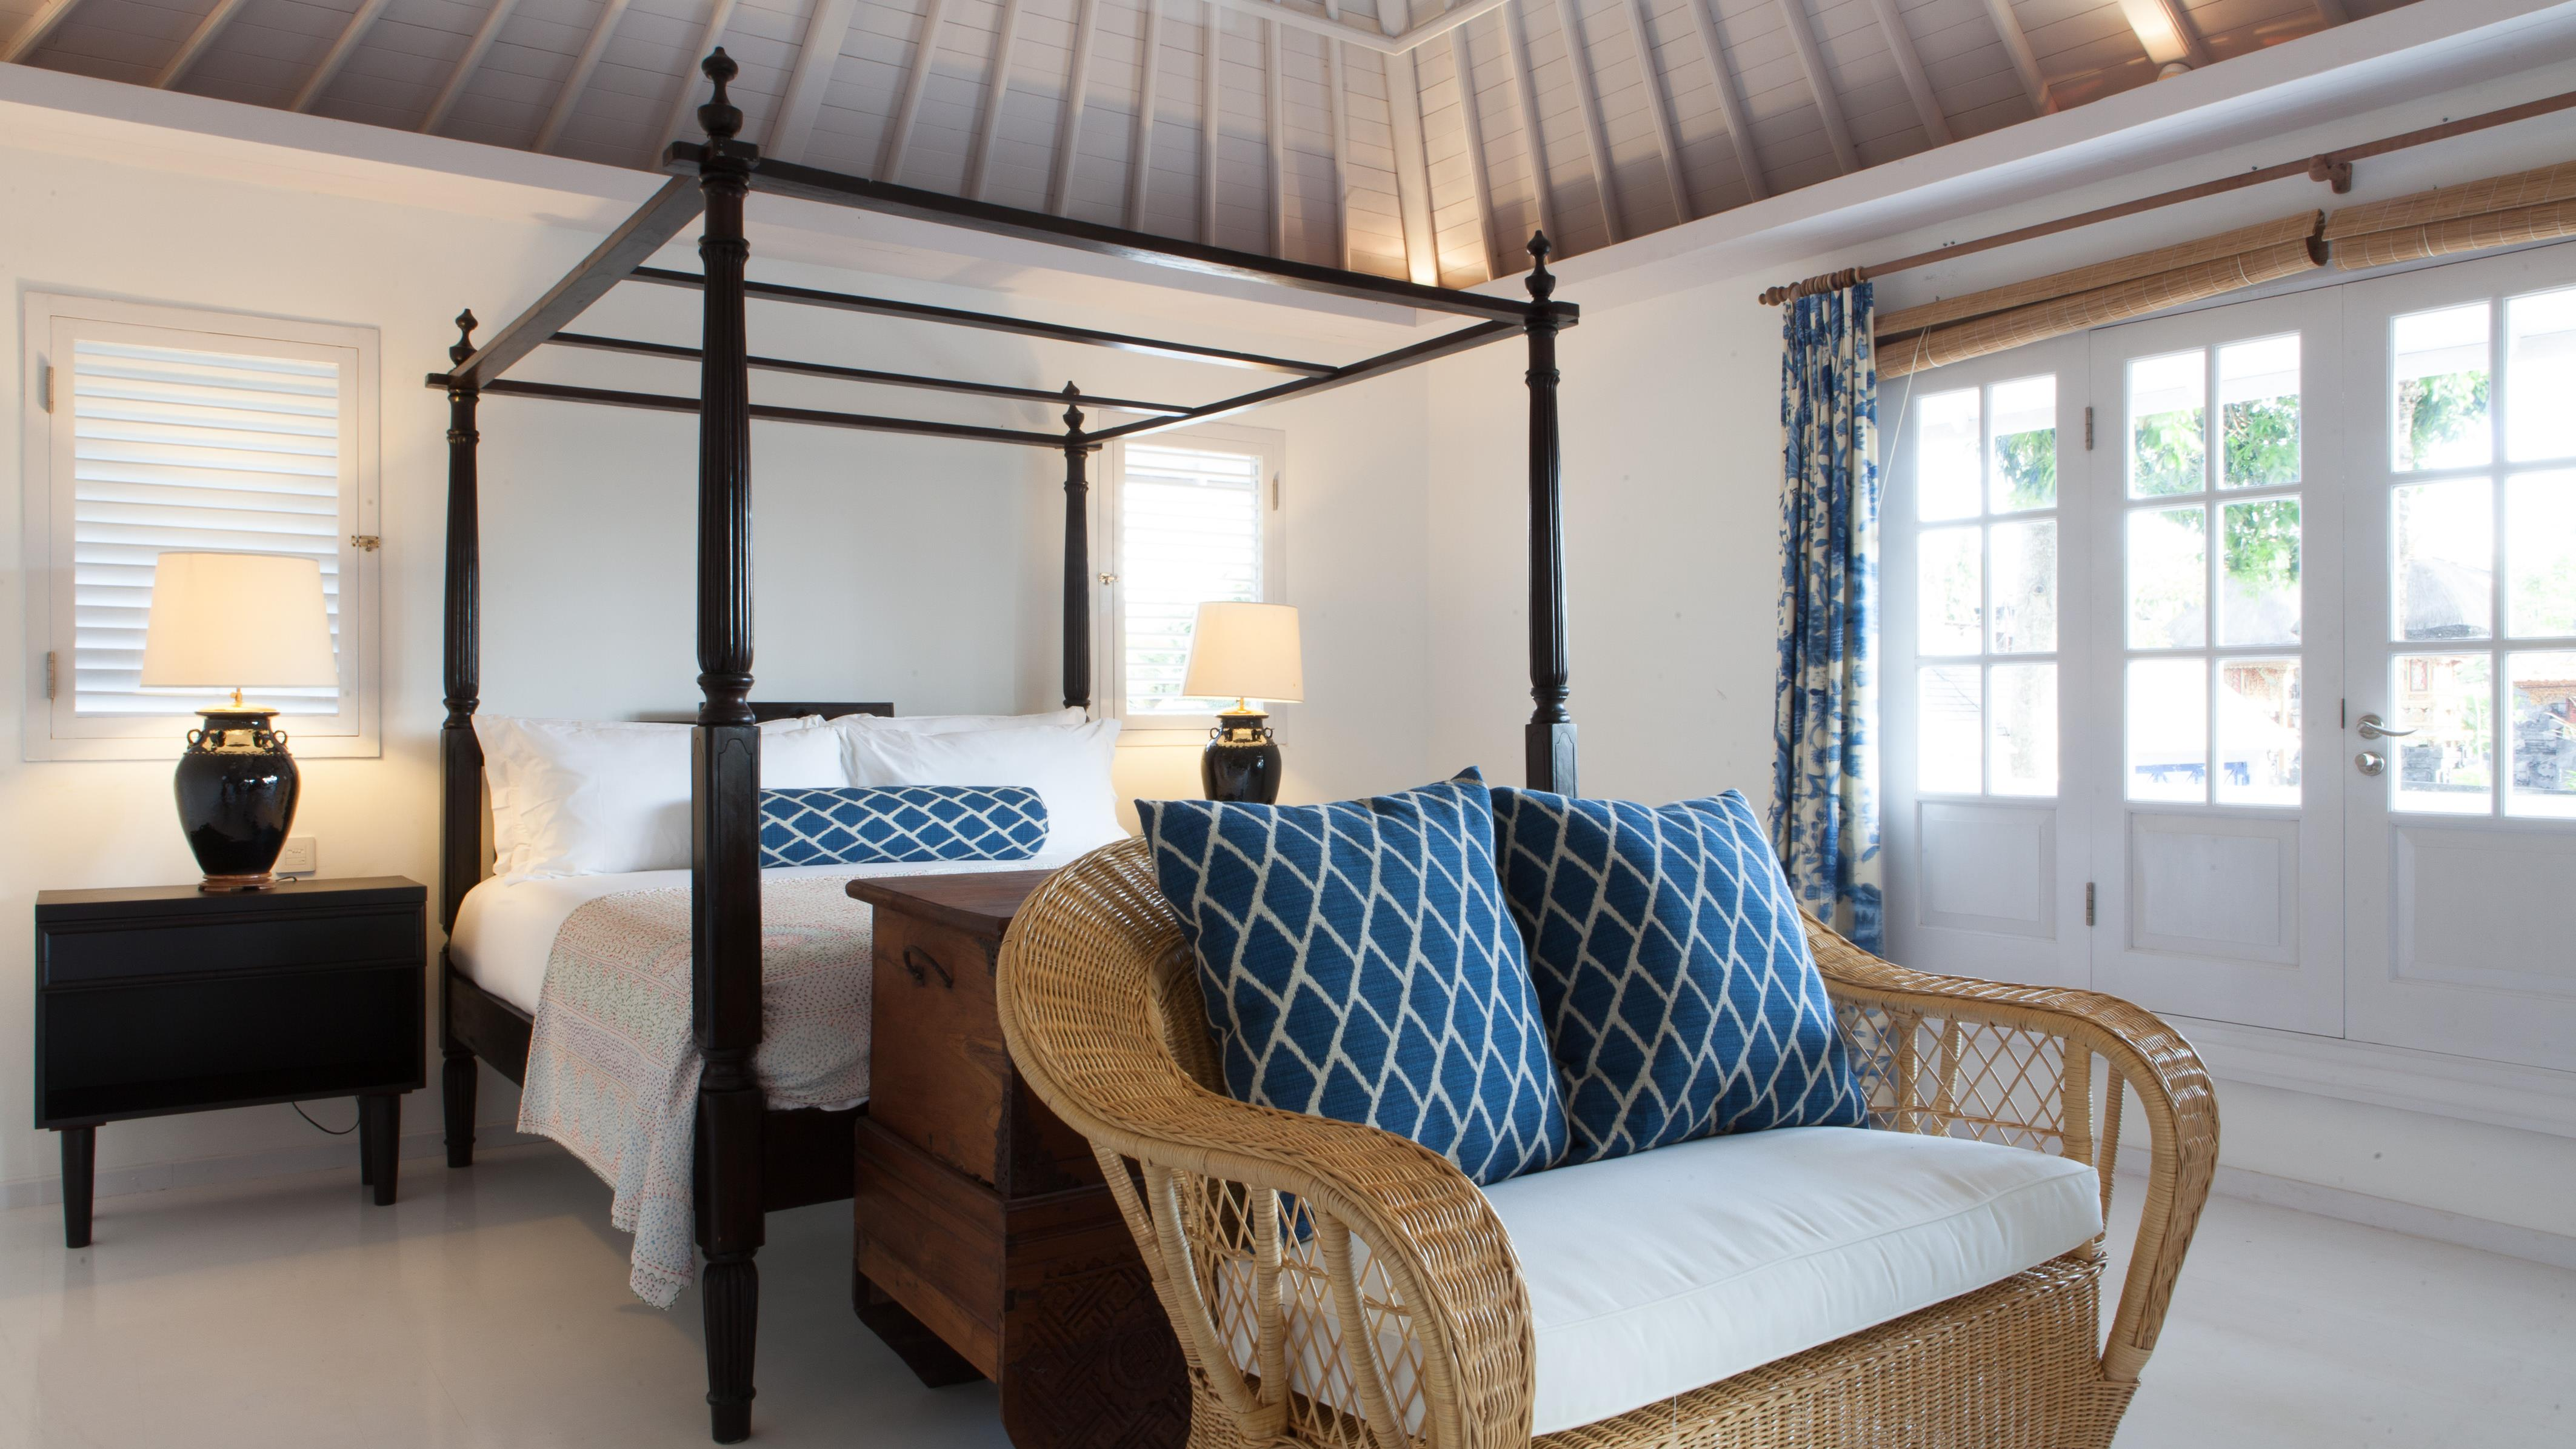 Bedroom with Four Poster Bed - The Cotton House - Seminyak, Bali